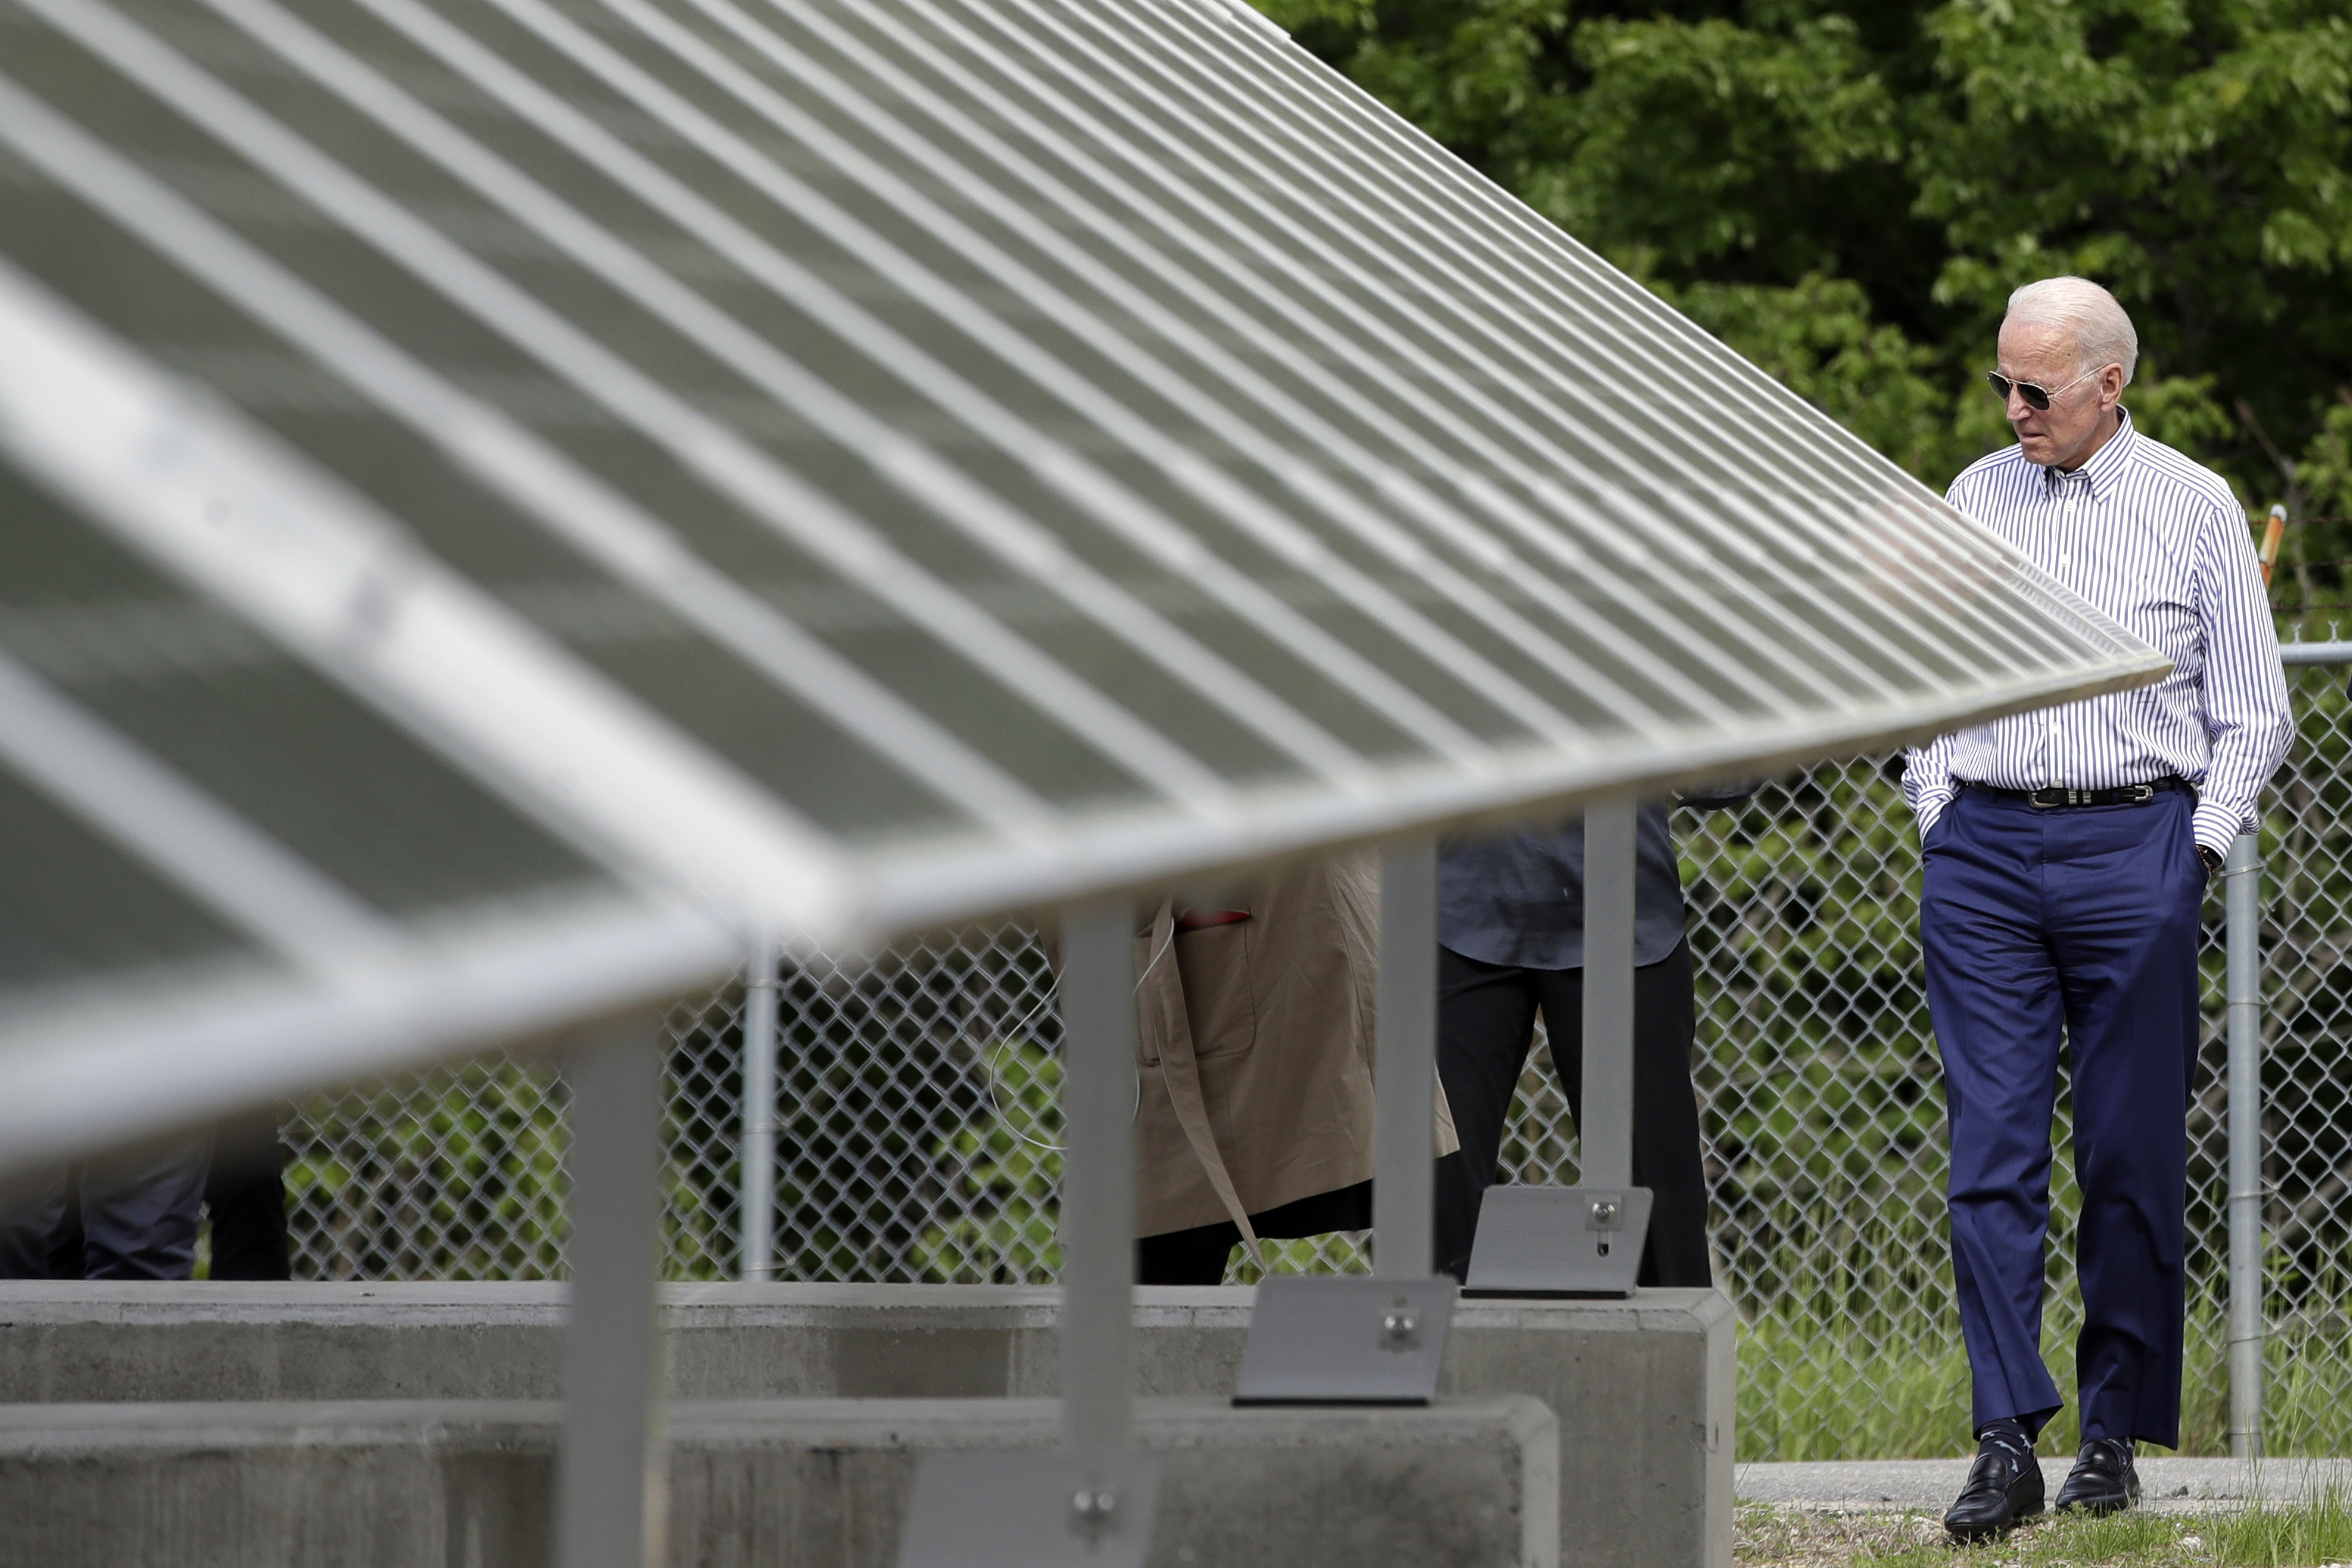 Former vice president and Democratic presidential candidate Joe Biden looks at an array of solar panels during a tour at the Plymouth Area Renewable Energy Initiative in Plymouth, N.H., June 4, 2019.